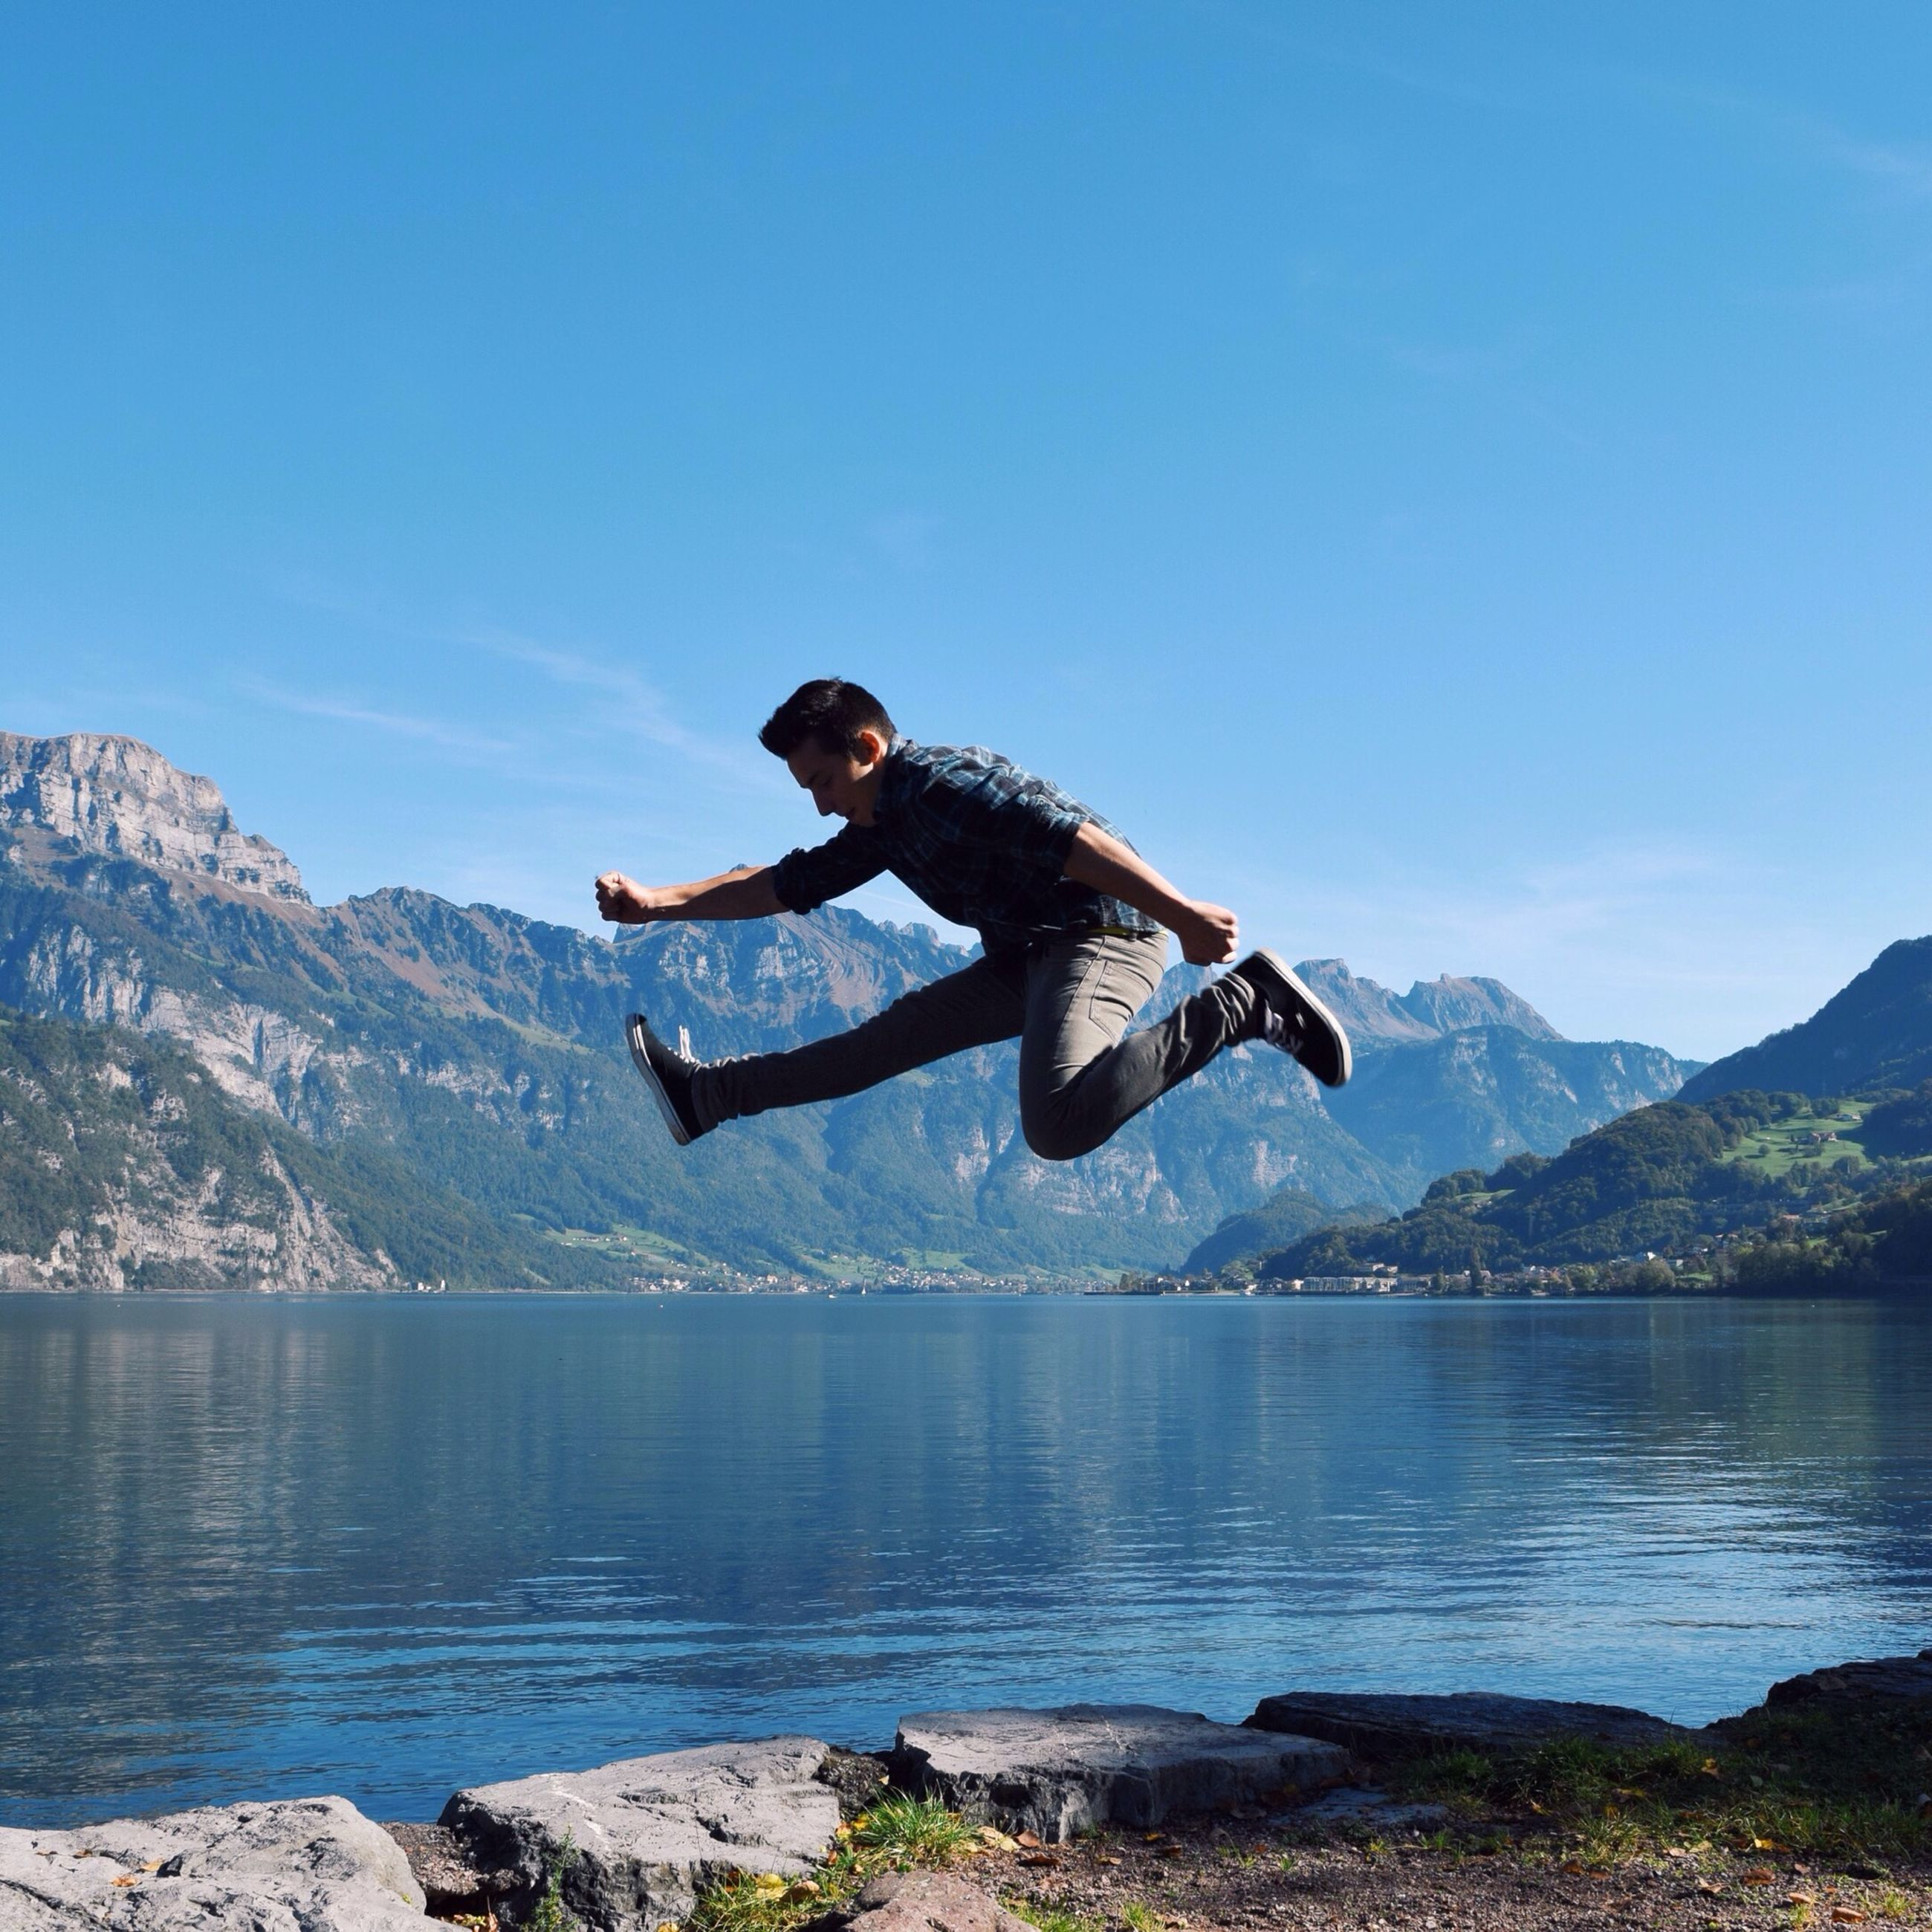 leisure activity, lifestyles, water, young adult, full length, mountain, lake, vacations, person, mountain range, enjoyment, casual clothing, blue, tranquil scene, clear sky, tranquility, scenics, nature